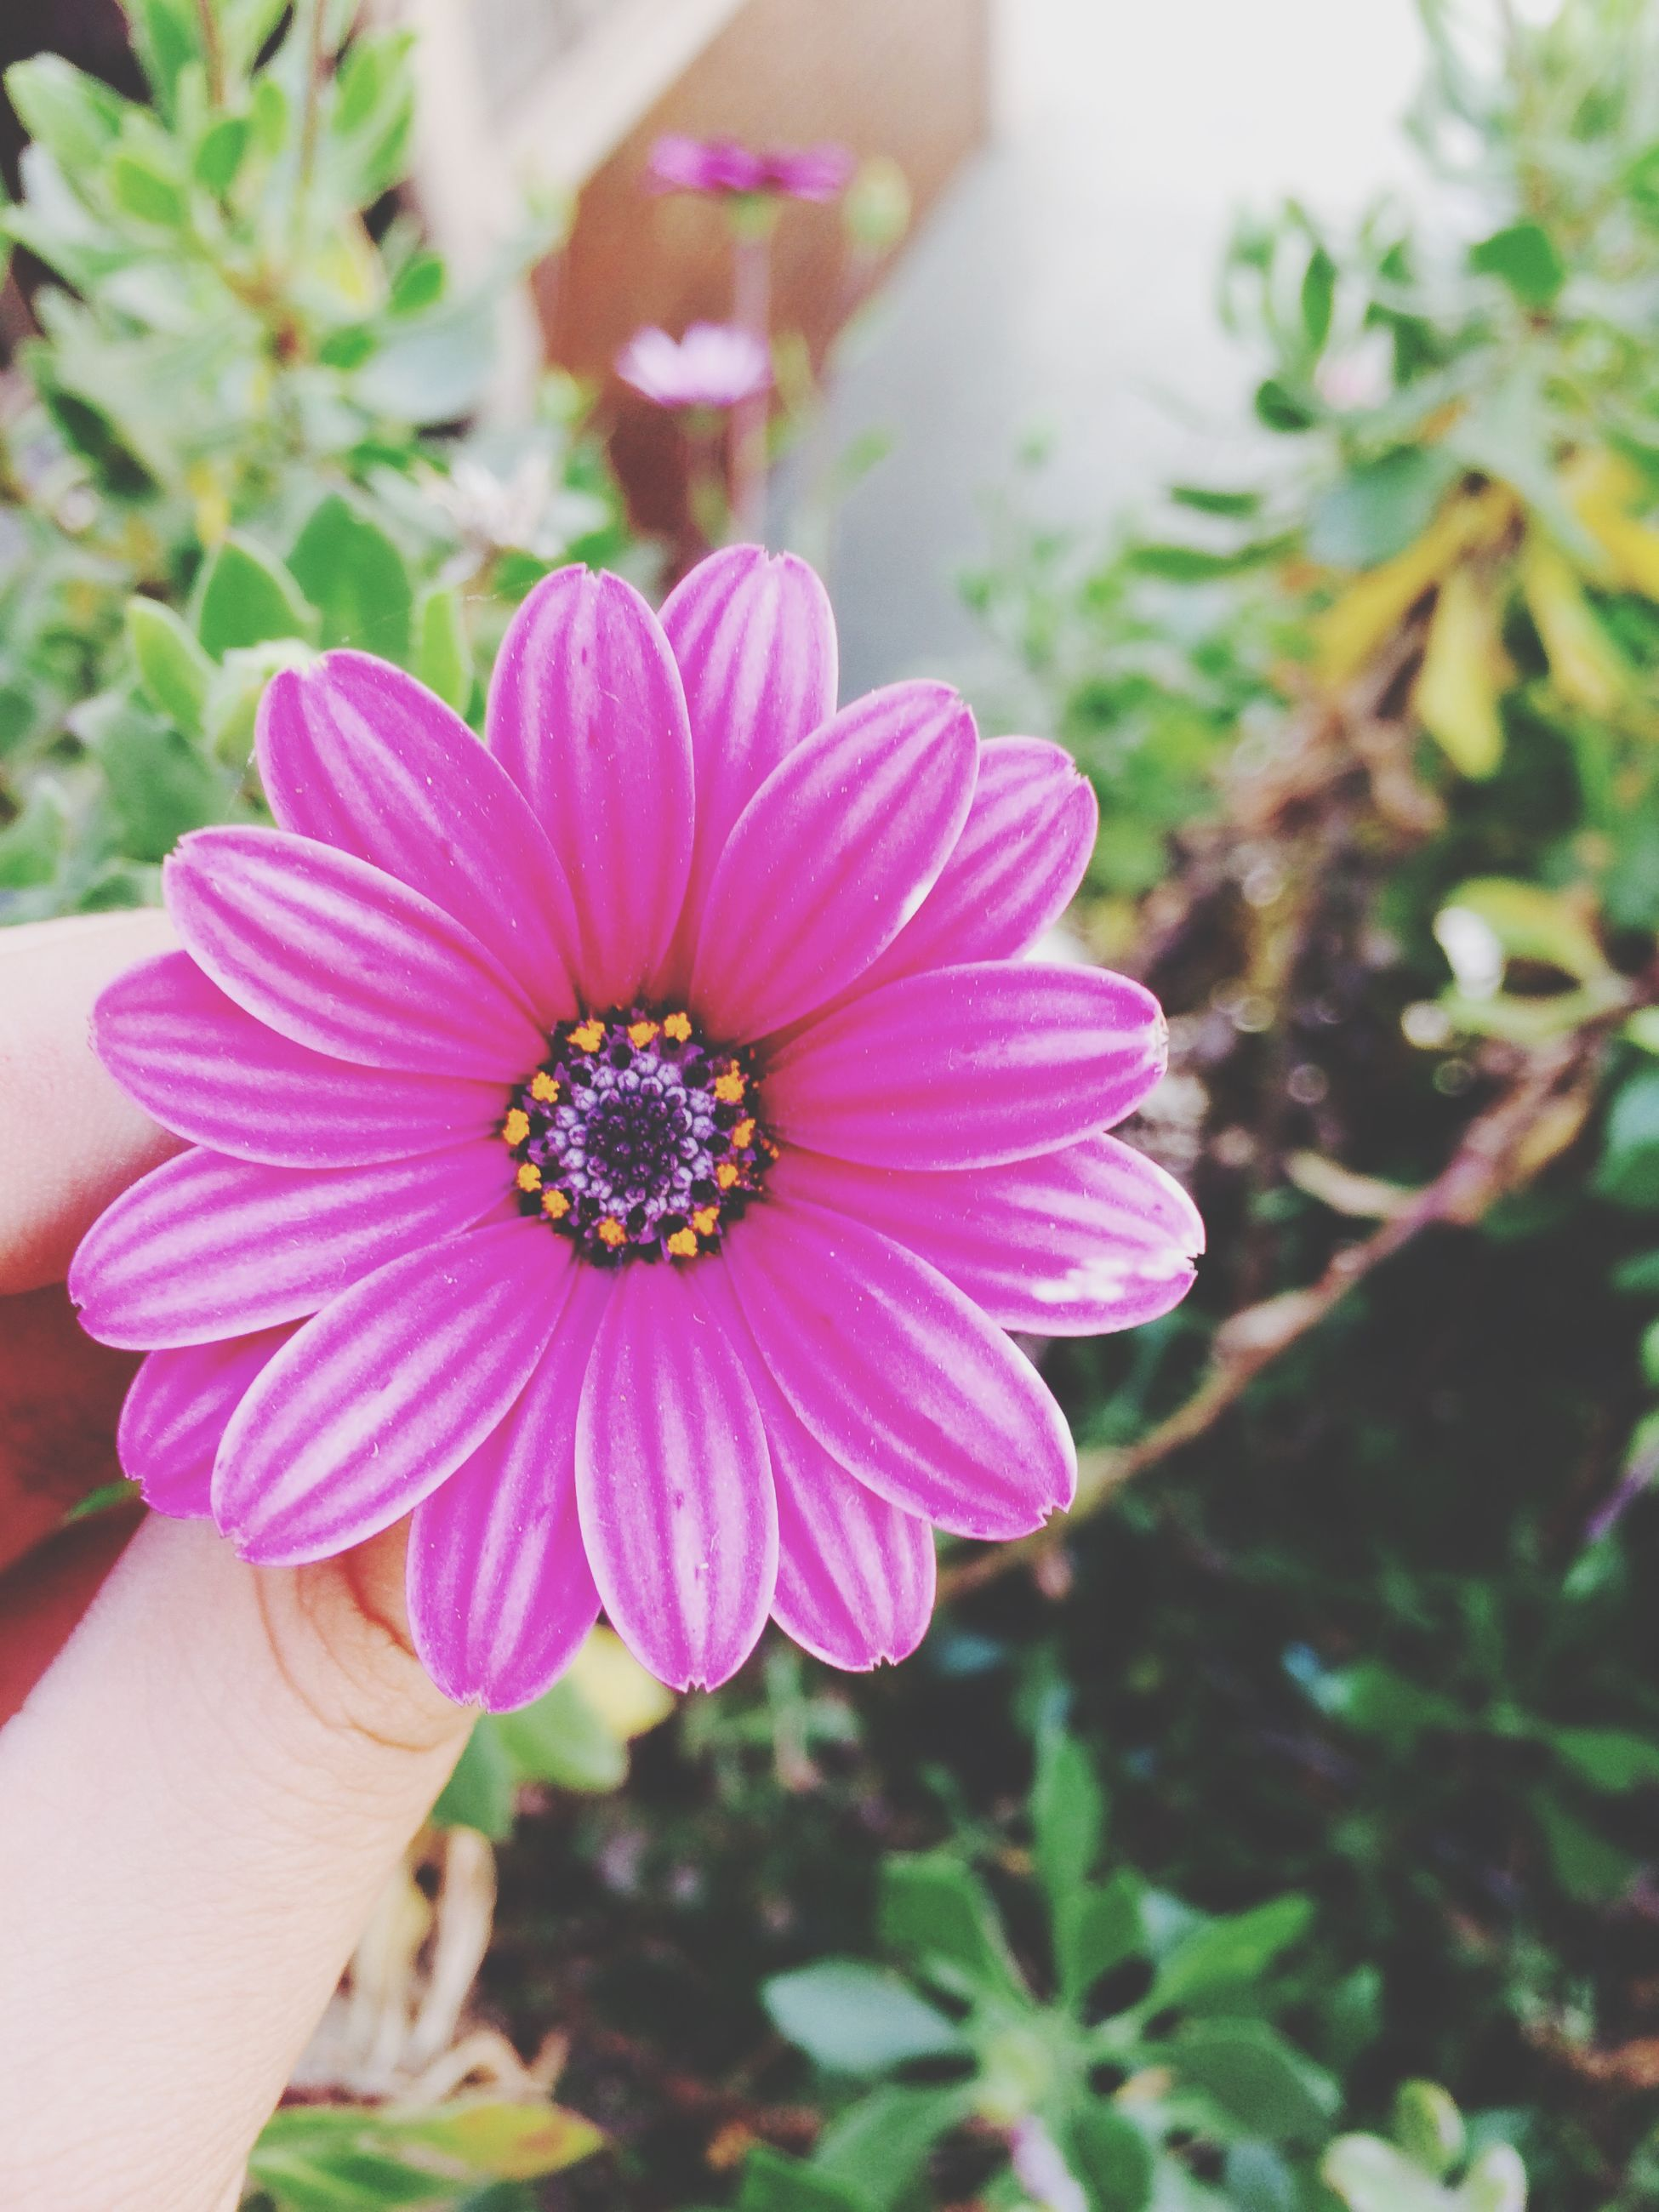 flower, petal, freshness, person, flower head, fragility, holding, focus on foreground, part of, pollen, close-up, beauty in nature, cropped, single flower, pink color, unrecognizable person, blooming